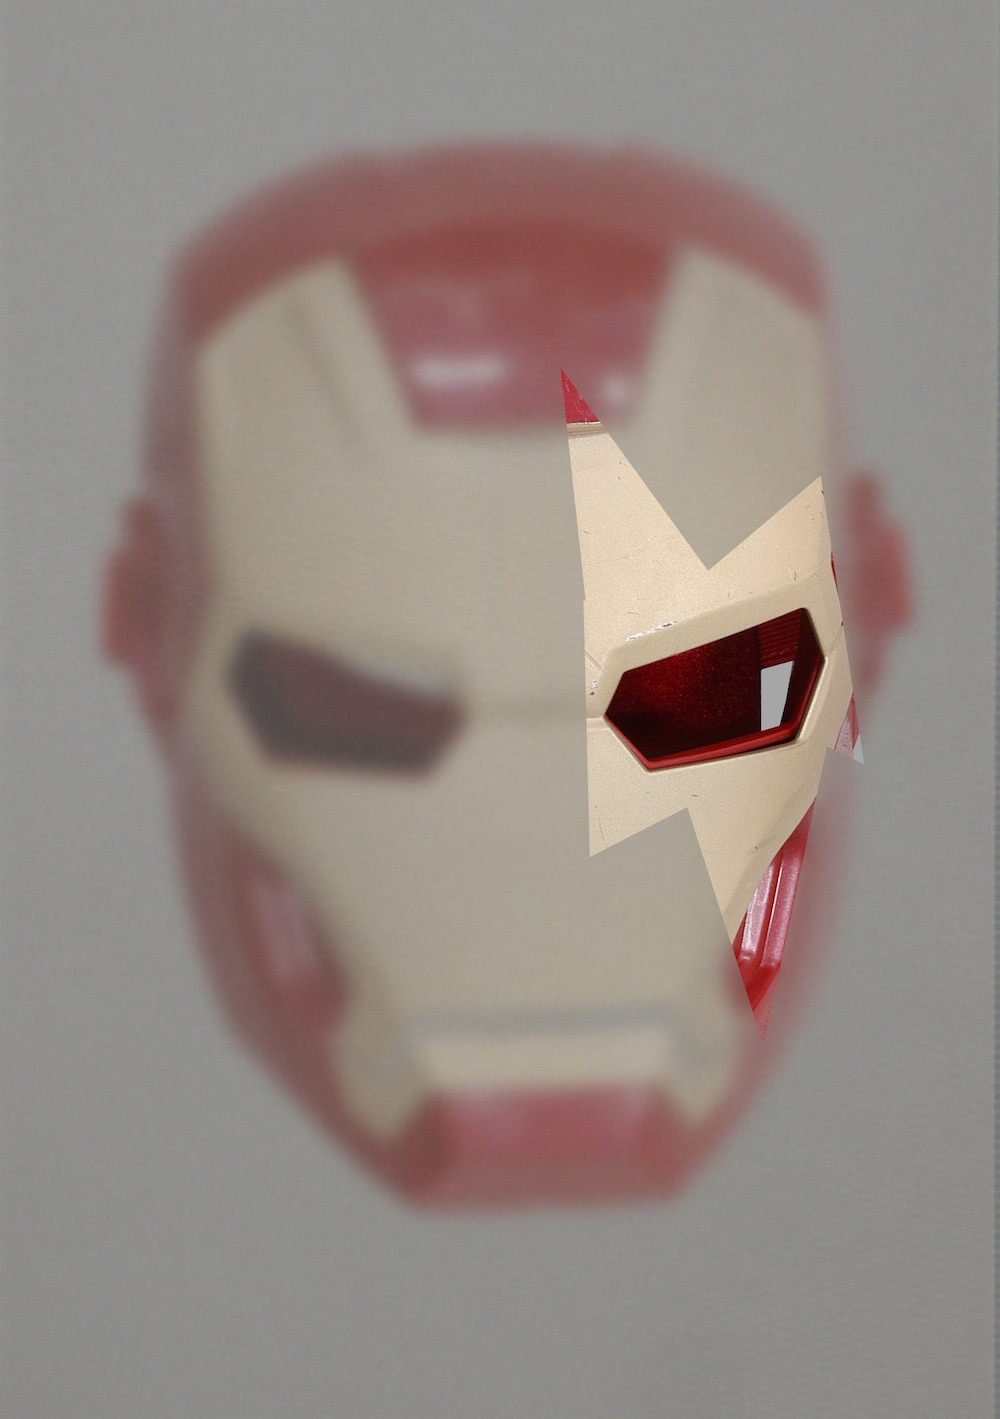 ironman.jpeg